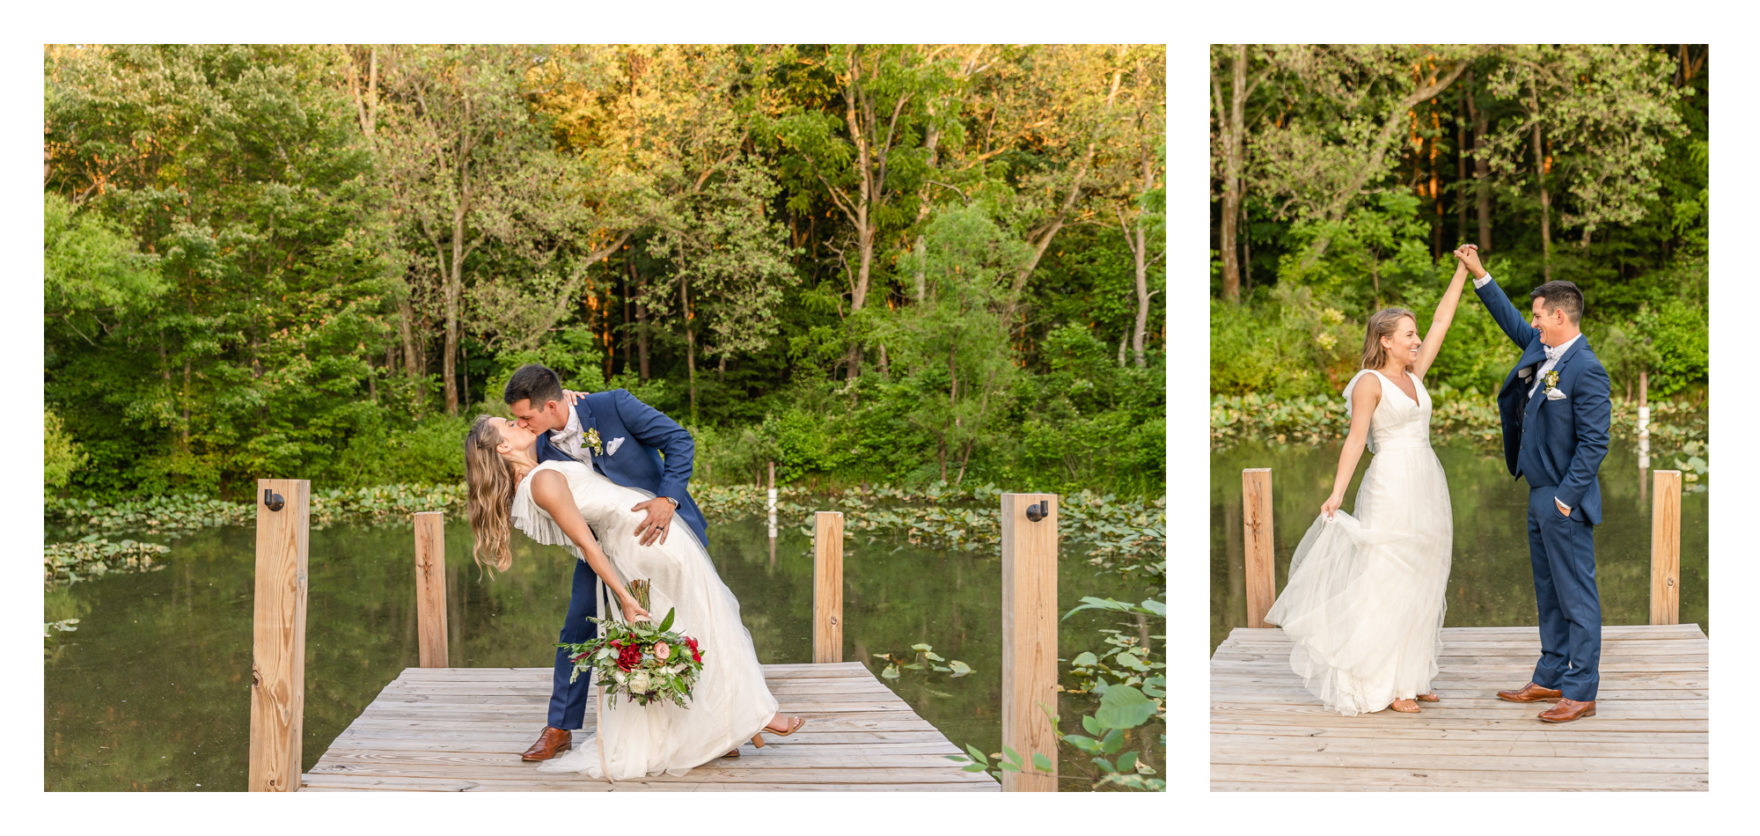 Summer wedding at a private residence farm in Westminster Carroll County Maryland. Cicadas, cows and dogs at the wedding. Pond view bride and groom